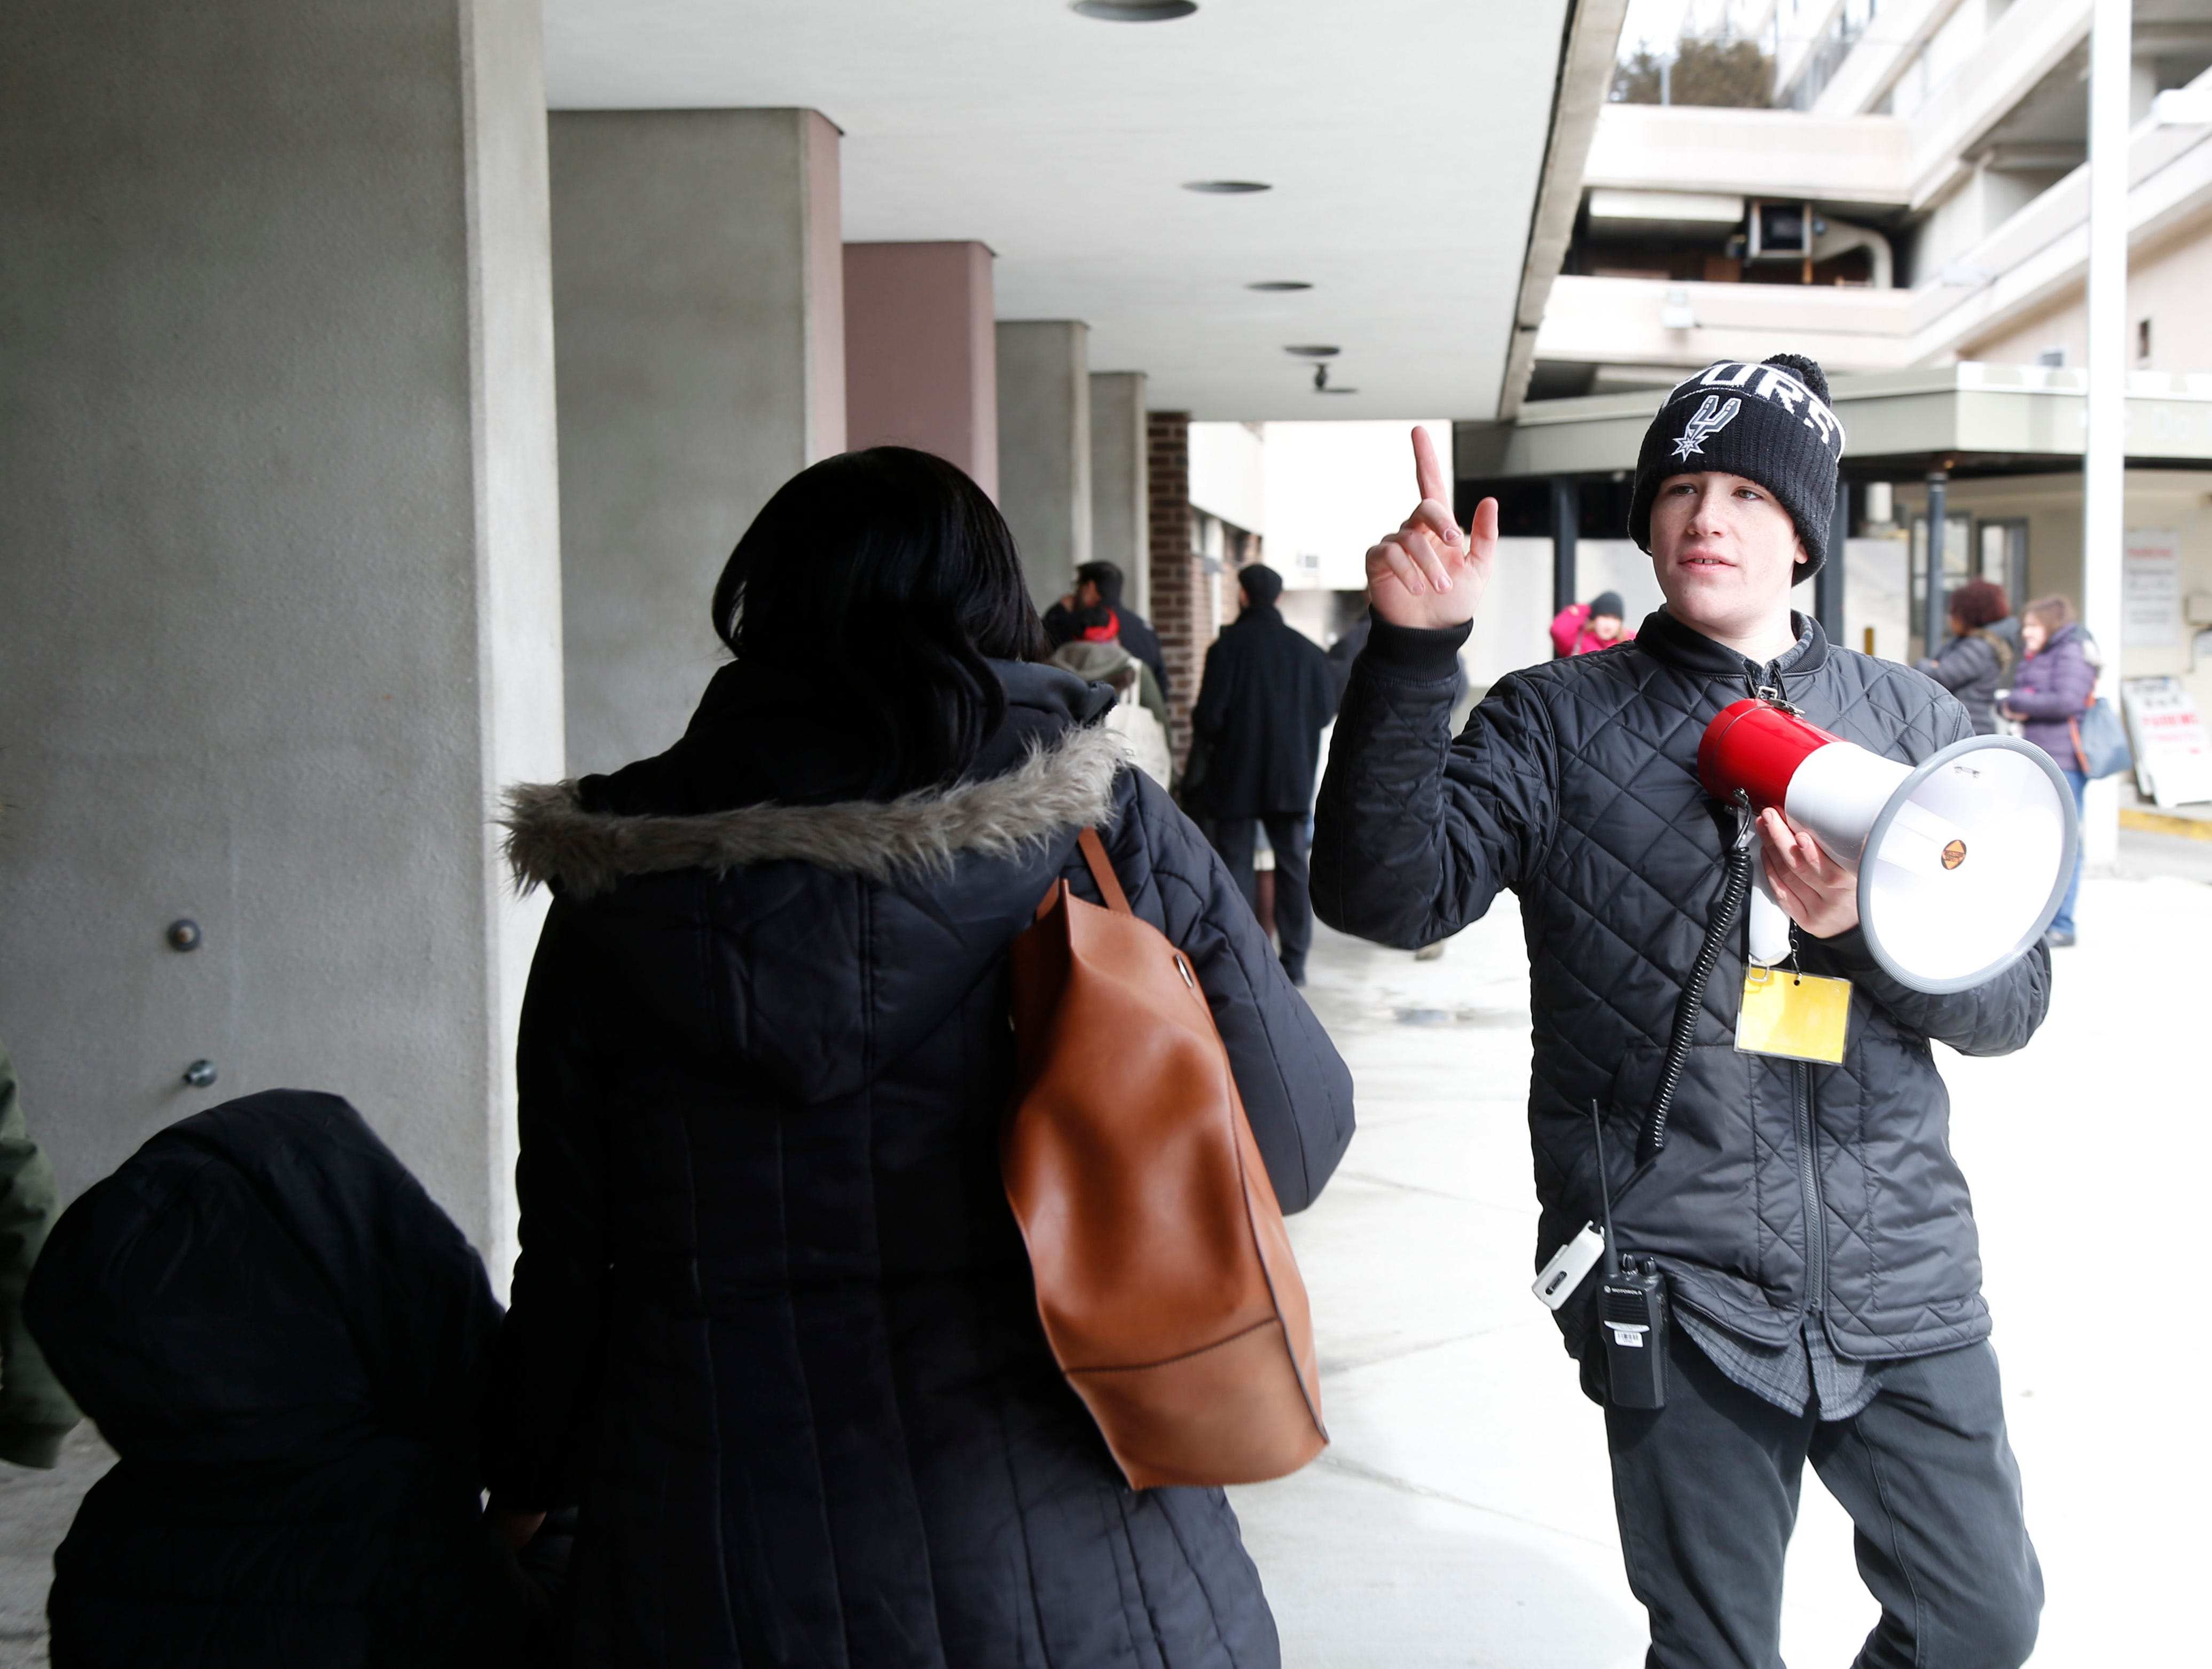 """Dylan Powers from Rita Powers Casting makes announcements outside the Majed J. Nesheiwat Convention Center for Saturday's open casting call for an HBO series staring Mark Ruffalo, called """"I Know This Much is True"""" in the City of Poughkeepsie on Feb 23, 2019."""